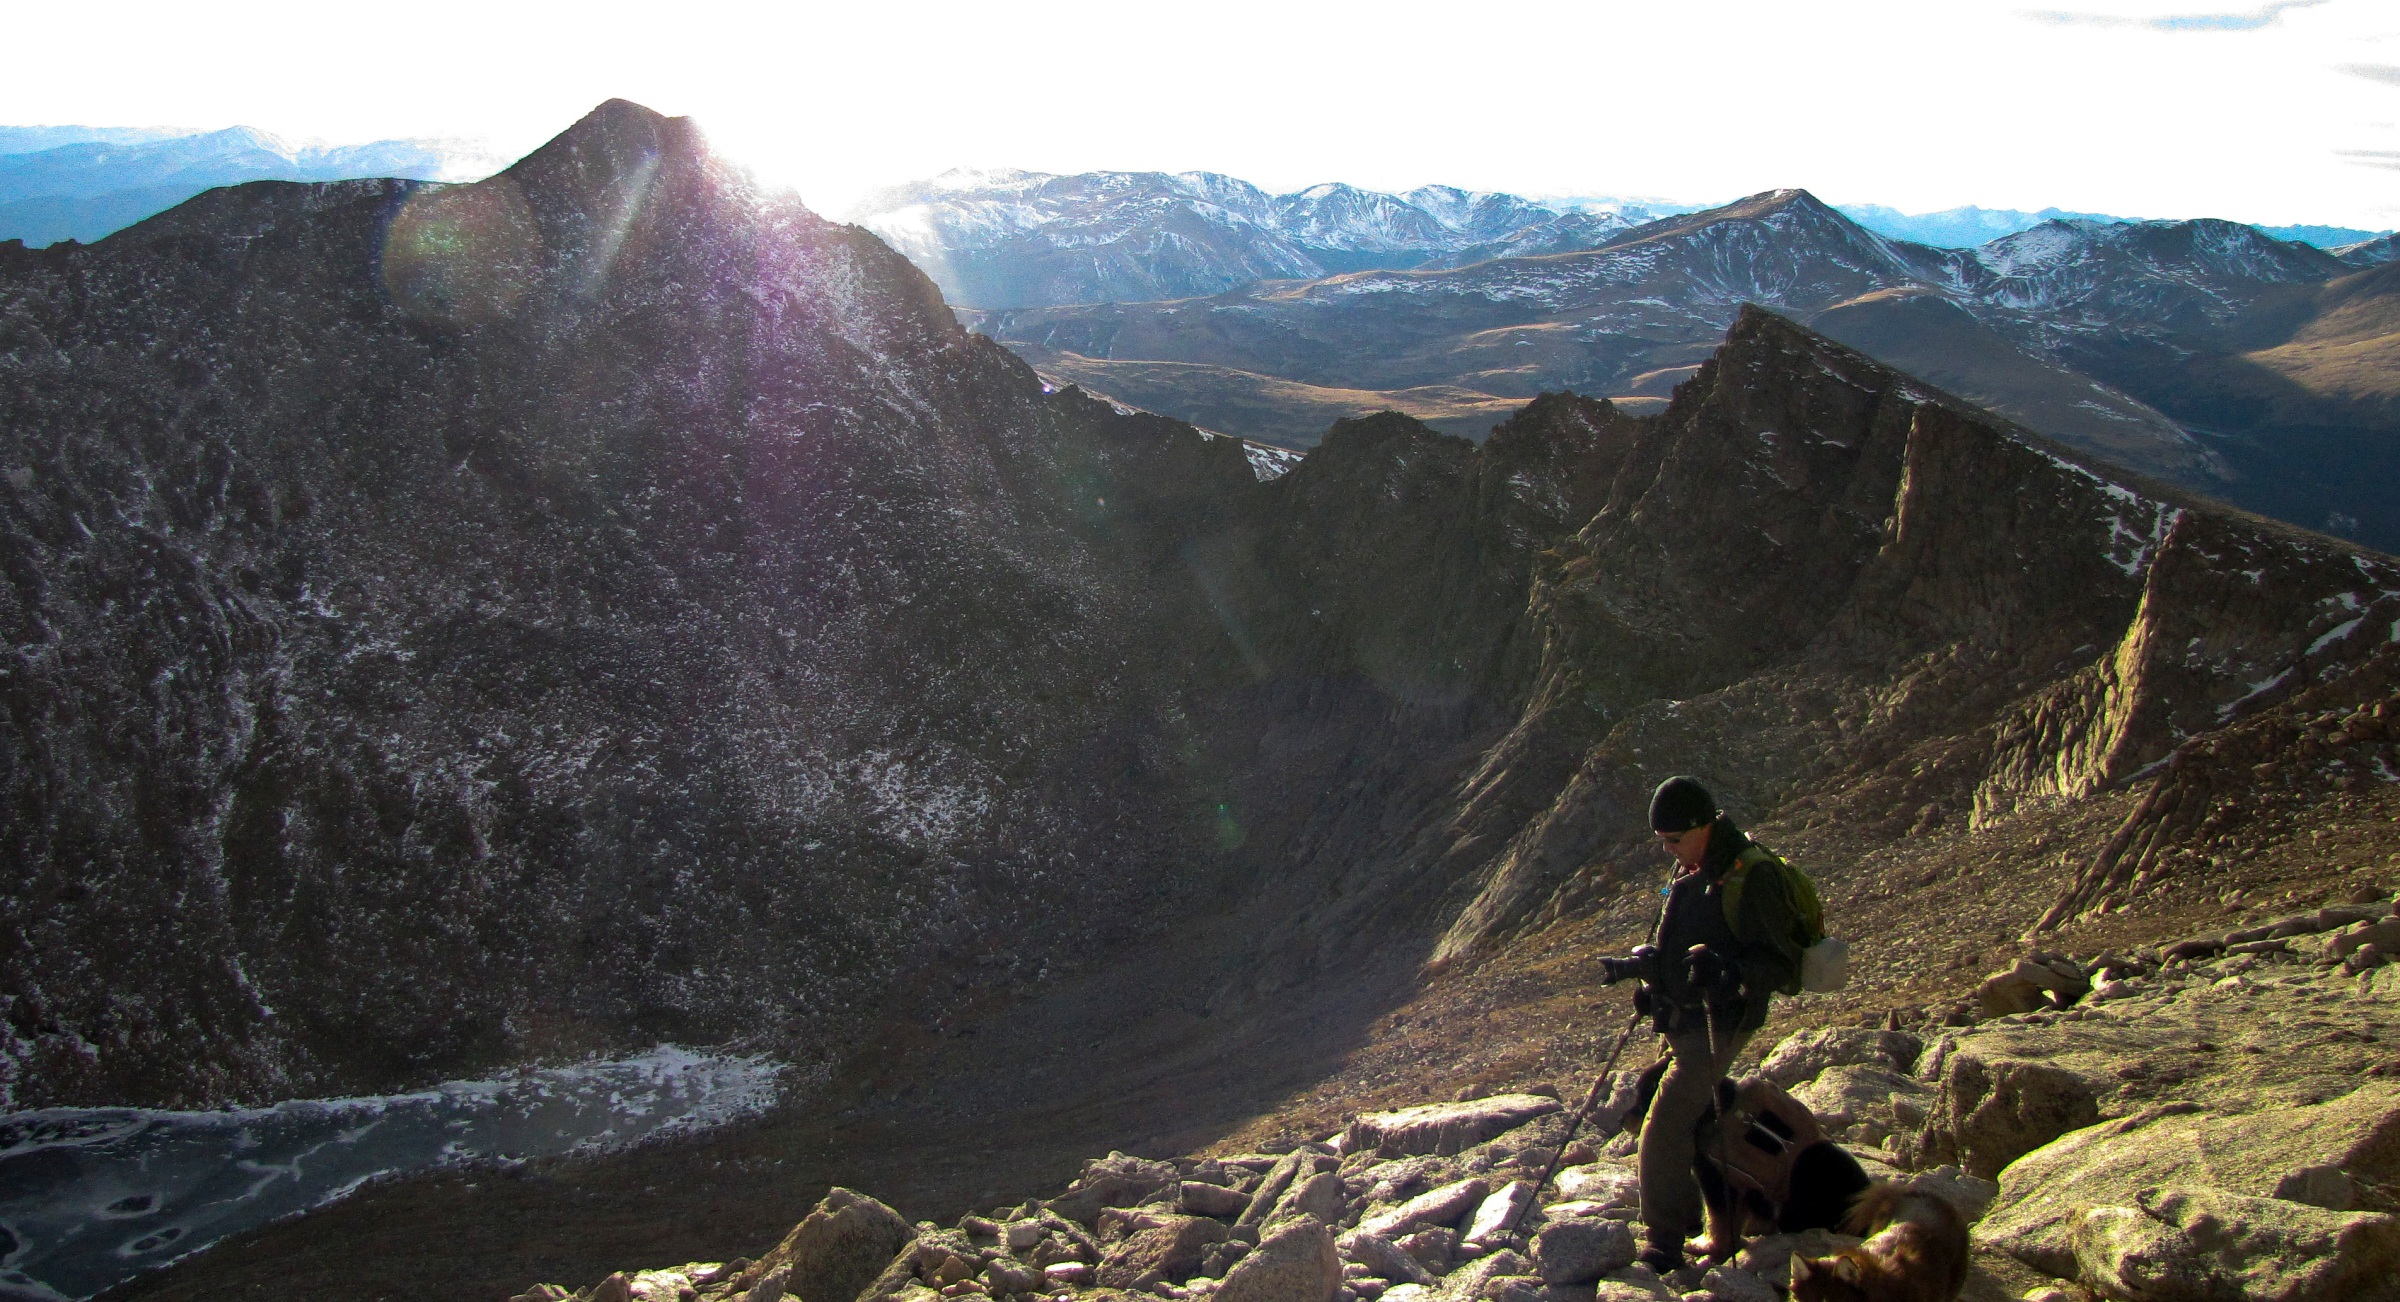 A climber admires the view from near the summit of Mount Evans in Colorado. Mount Evans, in the Mount Evans Wilderness, is 14,265' in elevation and the 12th highest peak in Colorado. Although a paved road, State Highway 103,climbs the mountain and stops just below the summit there are many challenging routes for climbers. This photo was taken after an ascent on Mount Evan's West Ridge. Evans was originally named Mount Rosalie but was changed to Evans in 1895 for John Evans, the 2nd governor of Colorado who resigned for his part in the Sand Creek Massacre. (Dean Krakel, Special to The Colorado Sun)